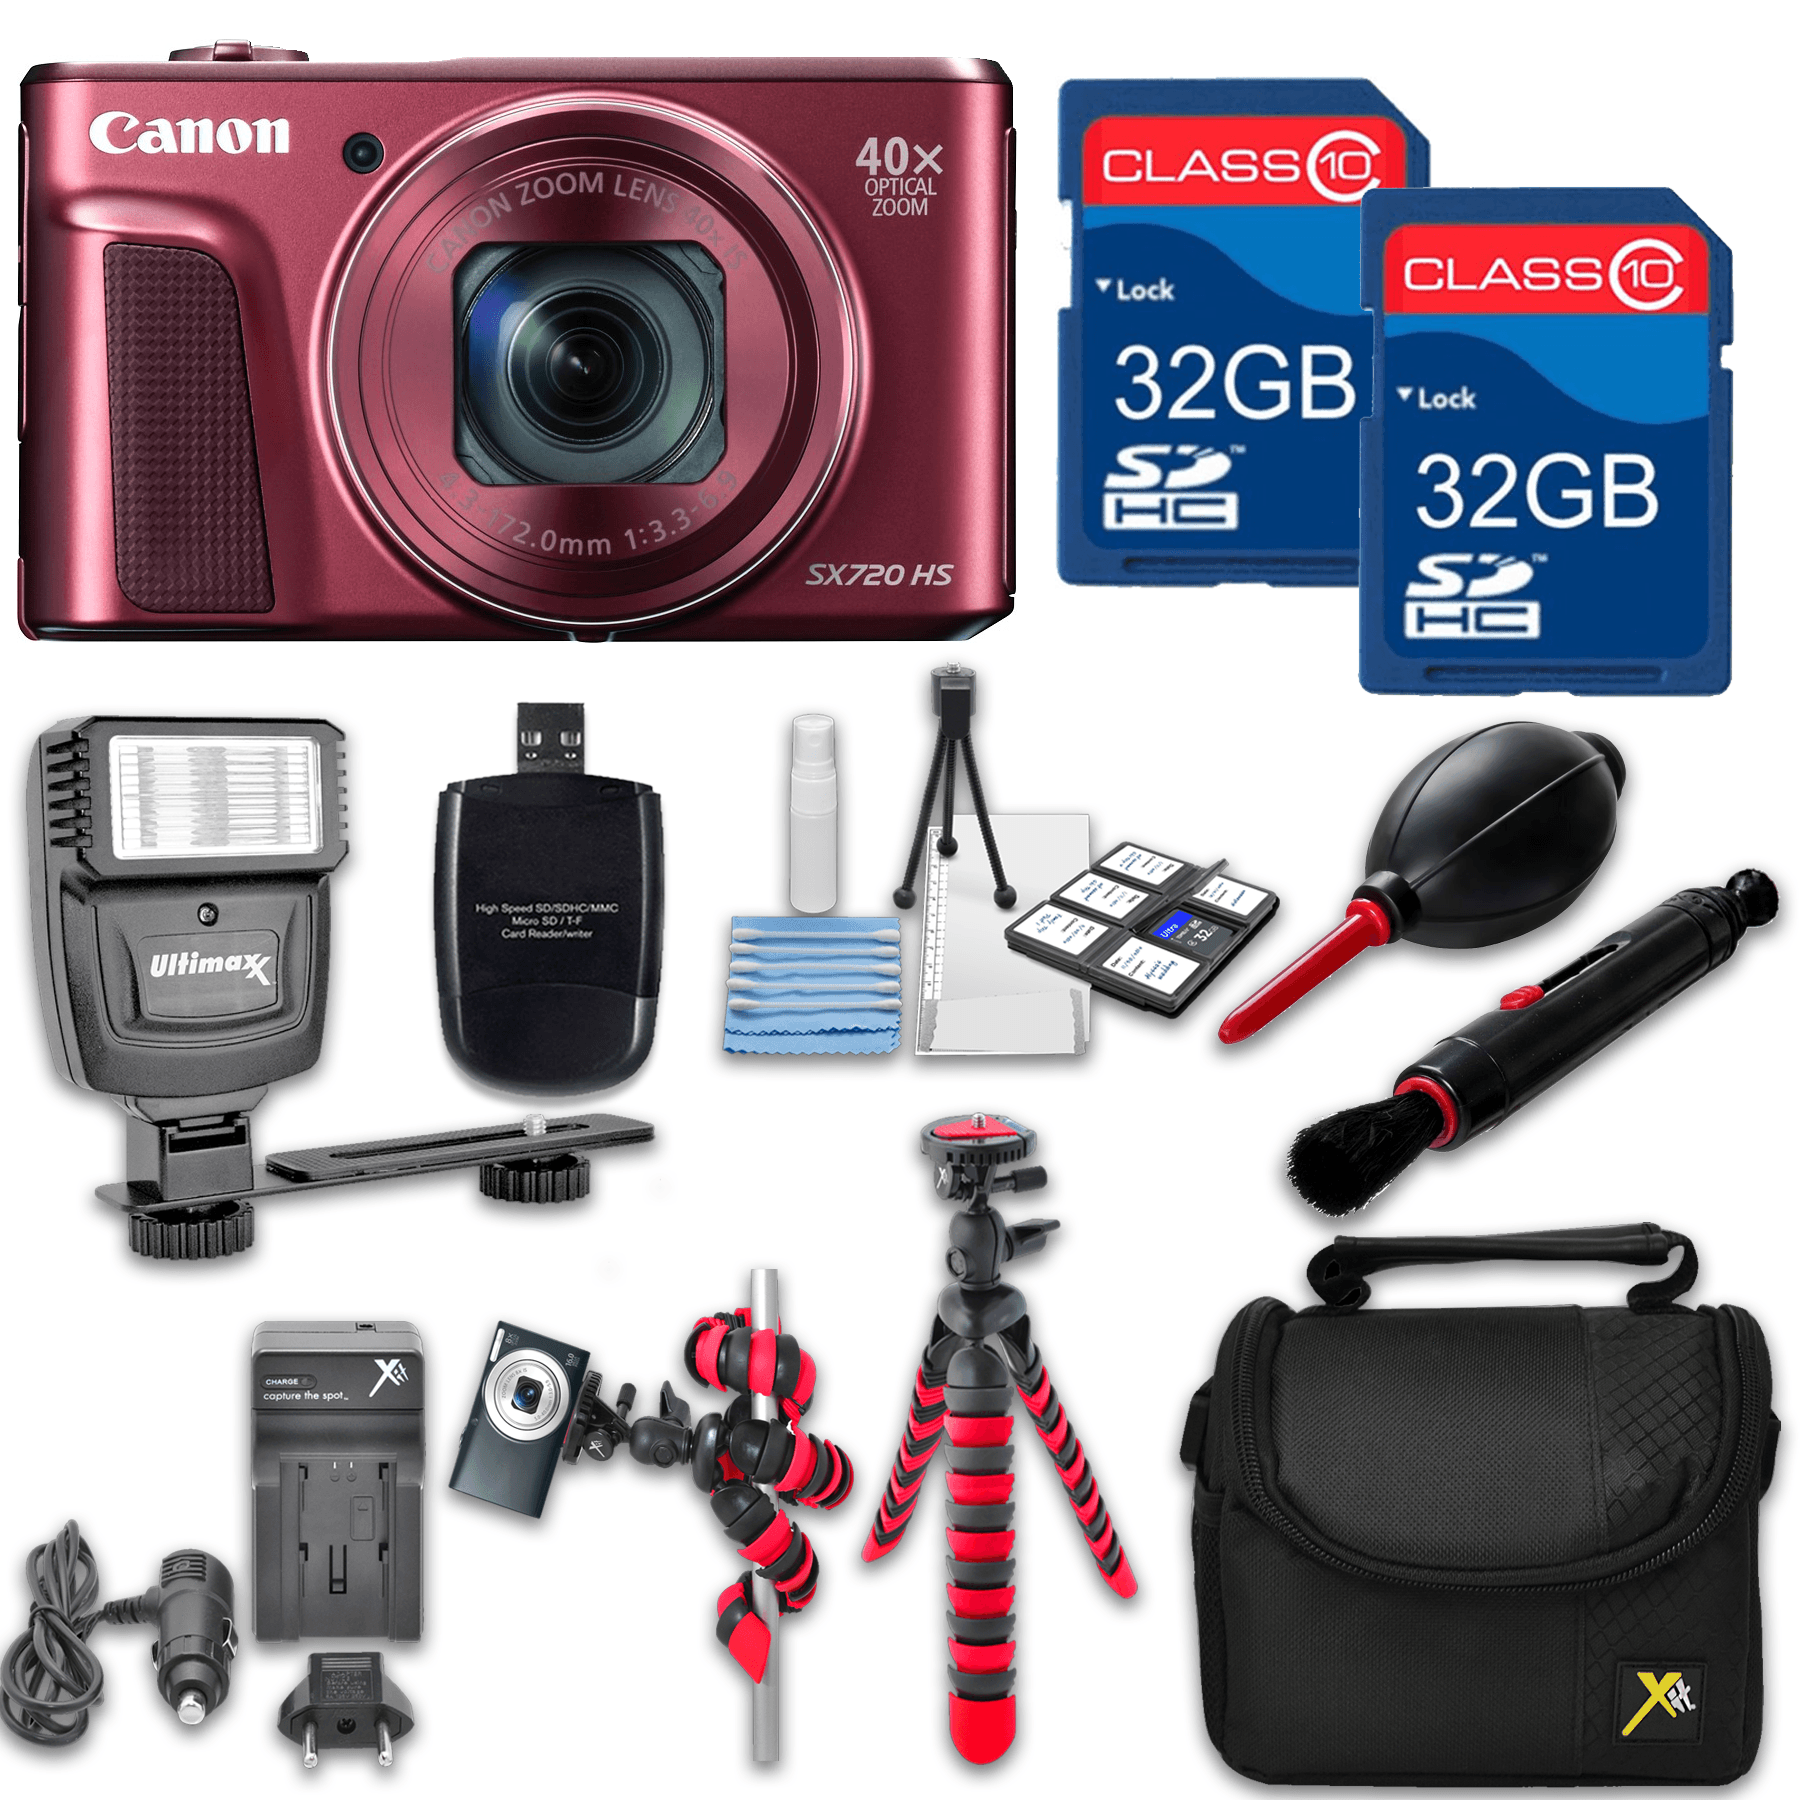 Canon Powershot SX720 (Red) HS Point and Shoot Digital Camera, W/ Case + 64GB Memory + Flash + Tripod + Case + Cleaning Kit + More